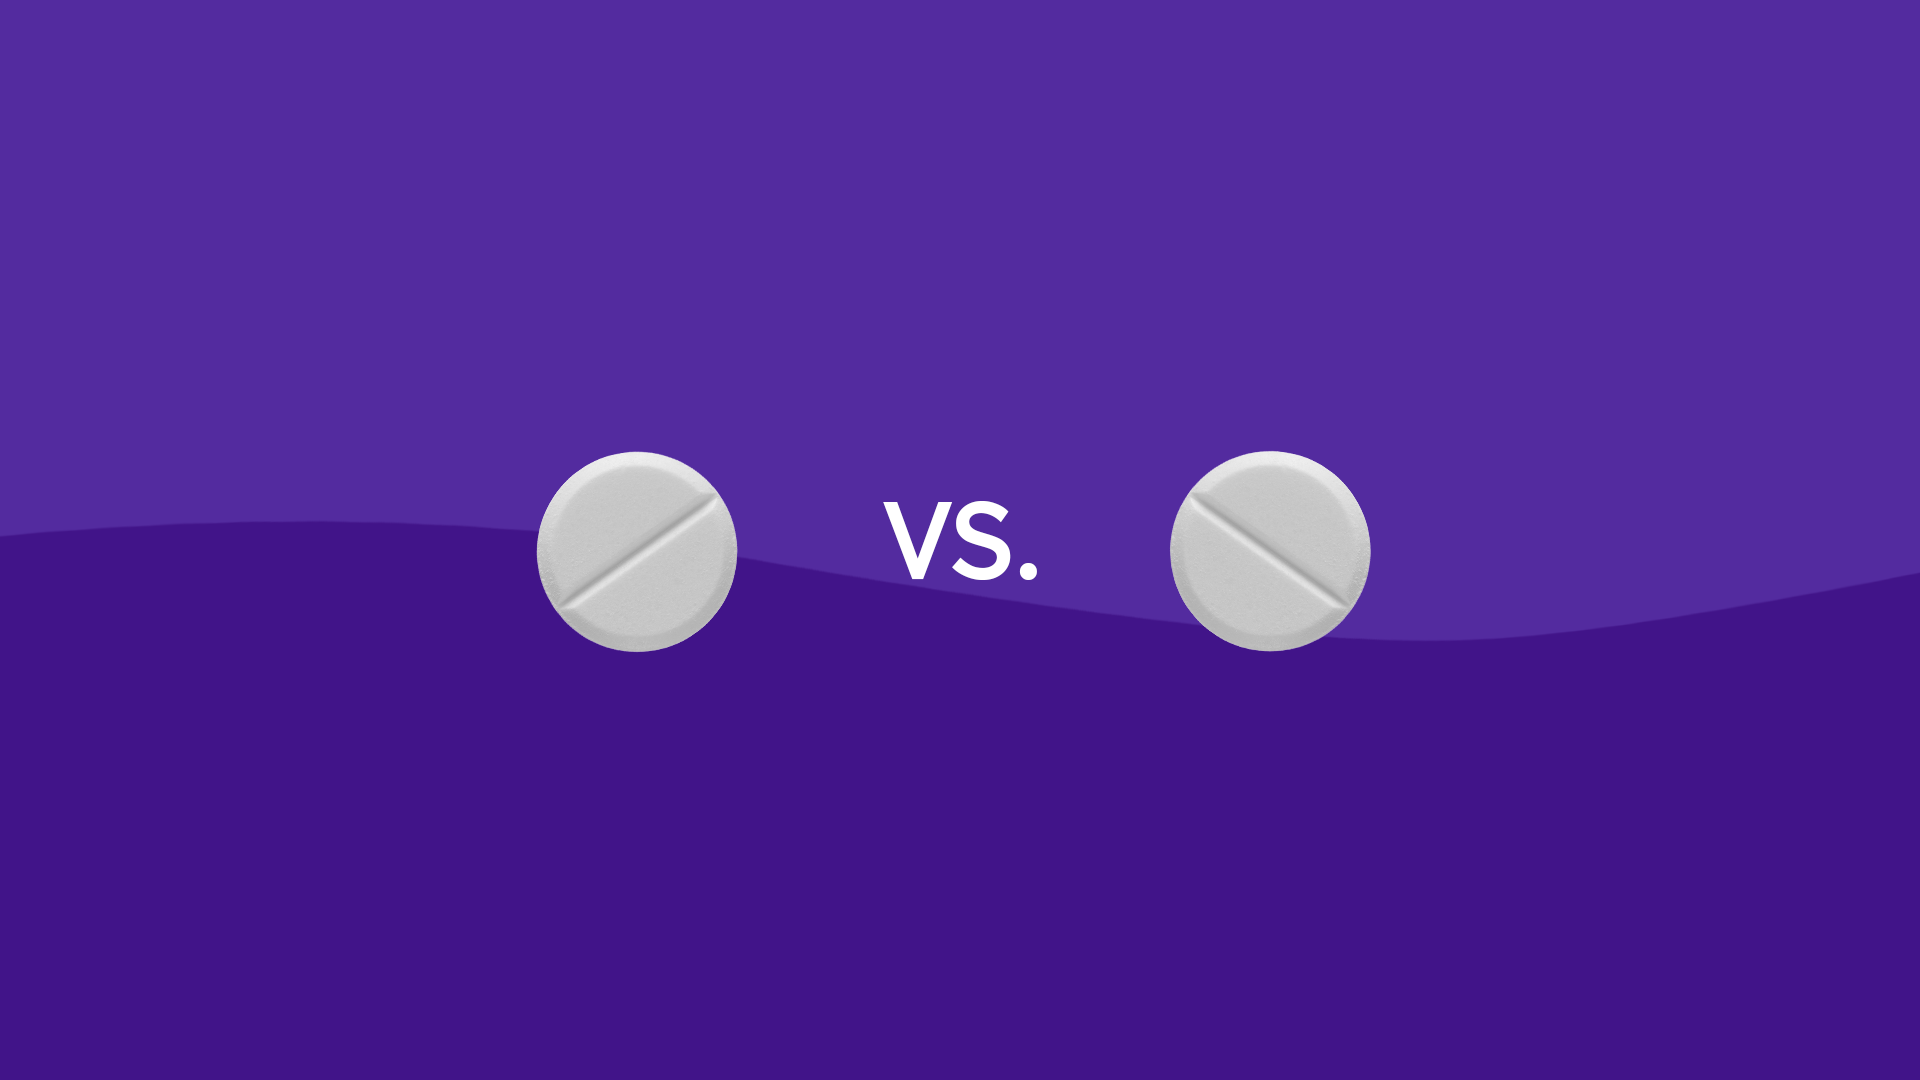 Klonopin vs. Valium: Differences, similarities, and which is better for you